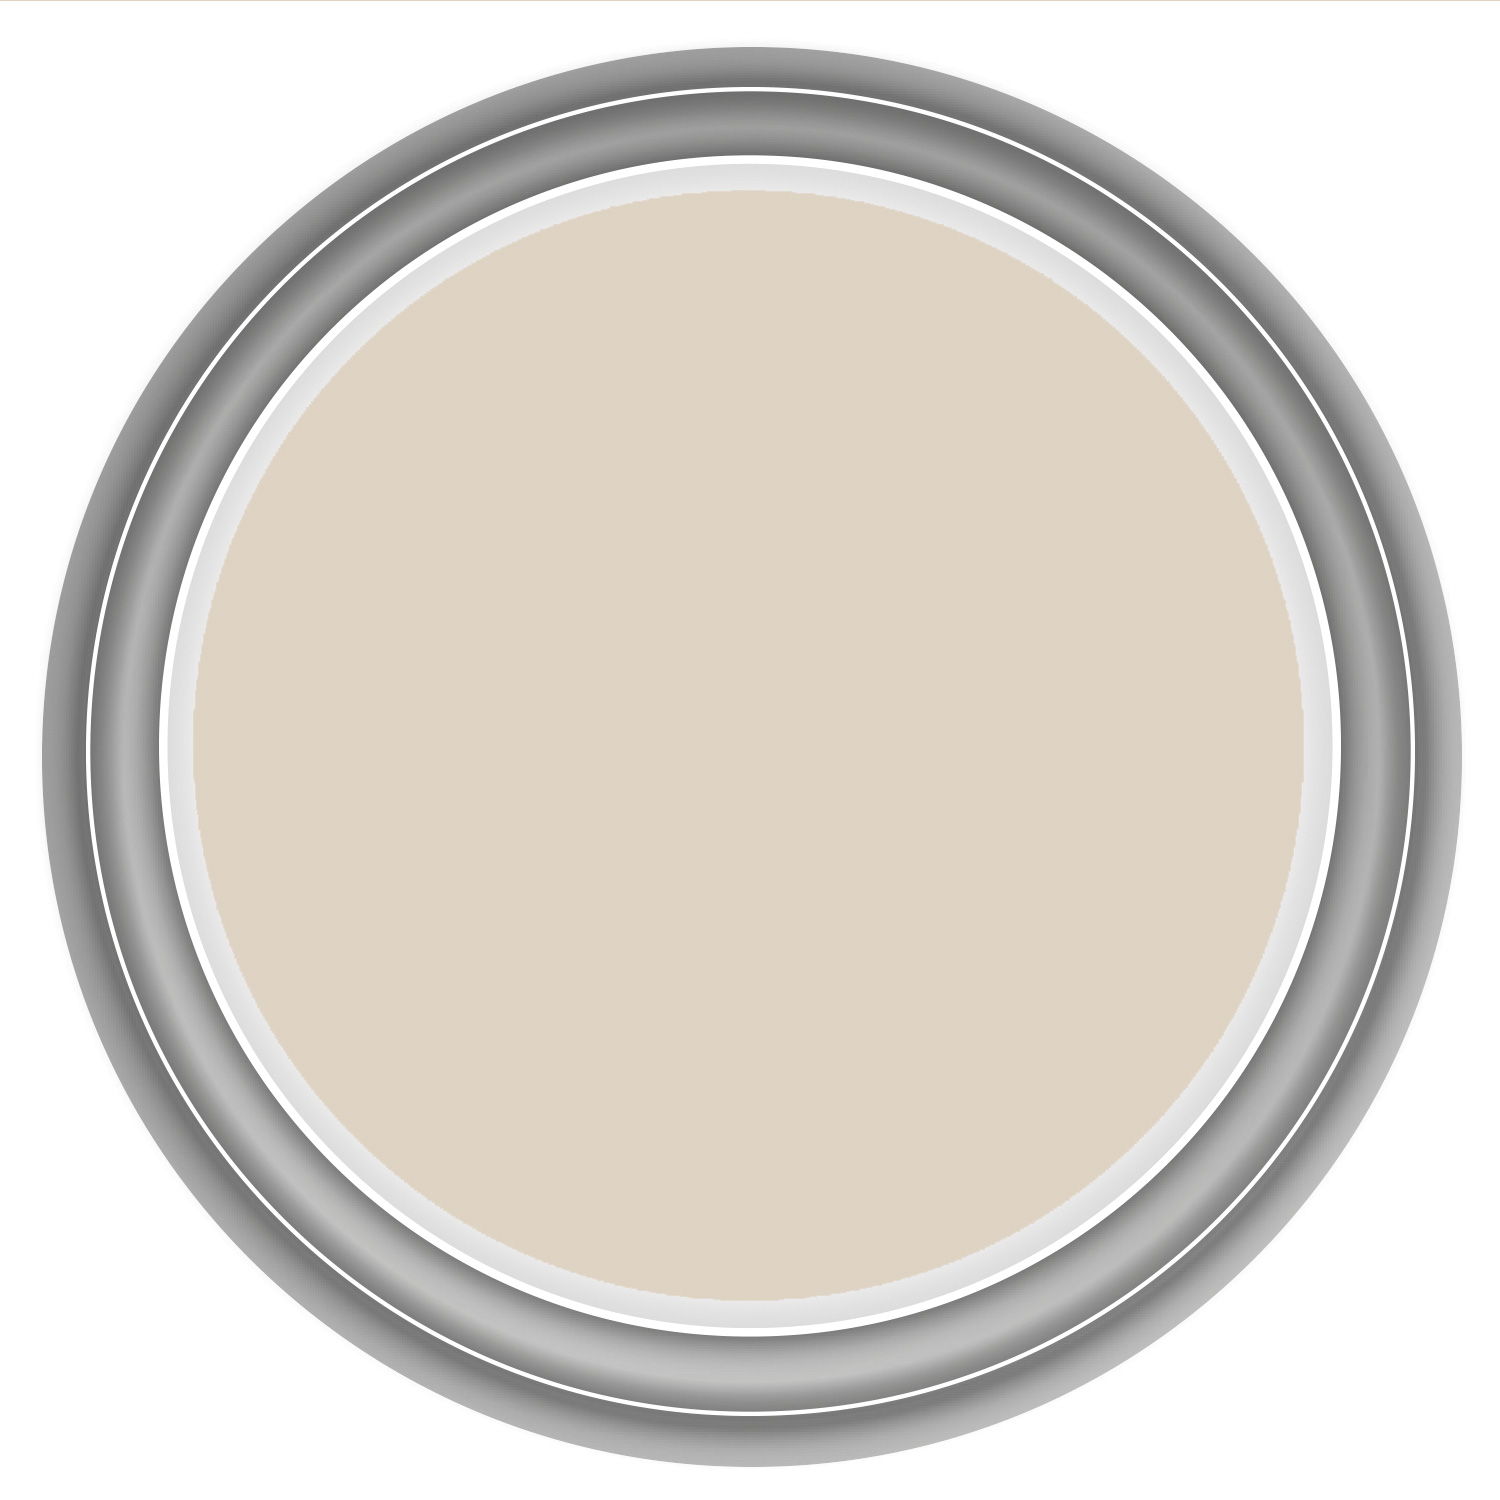 Image of Crown 2.5L Kitchen & Bathroom Mid Sheen Emulsion Paint, Wheatgrass